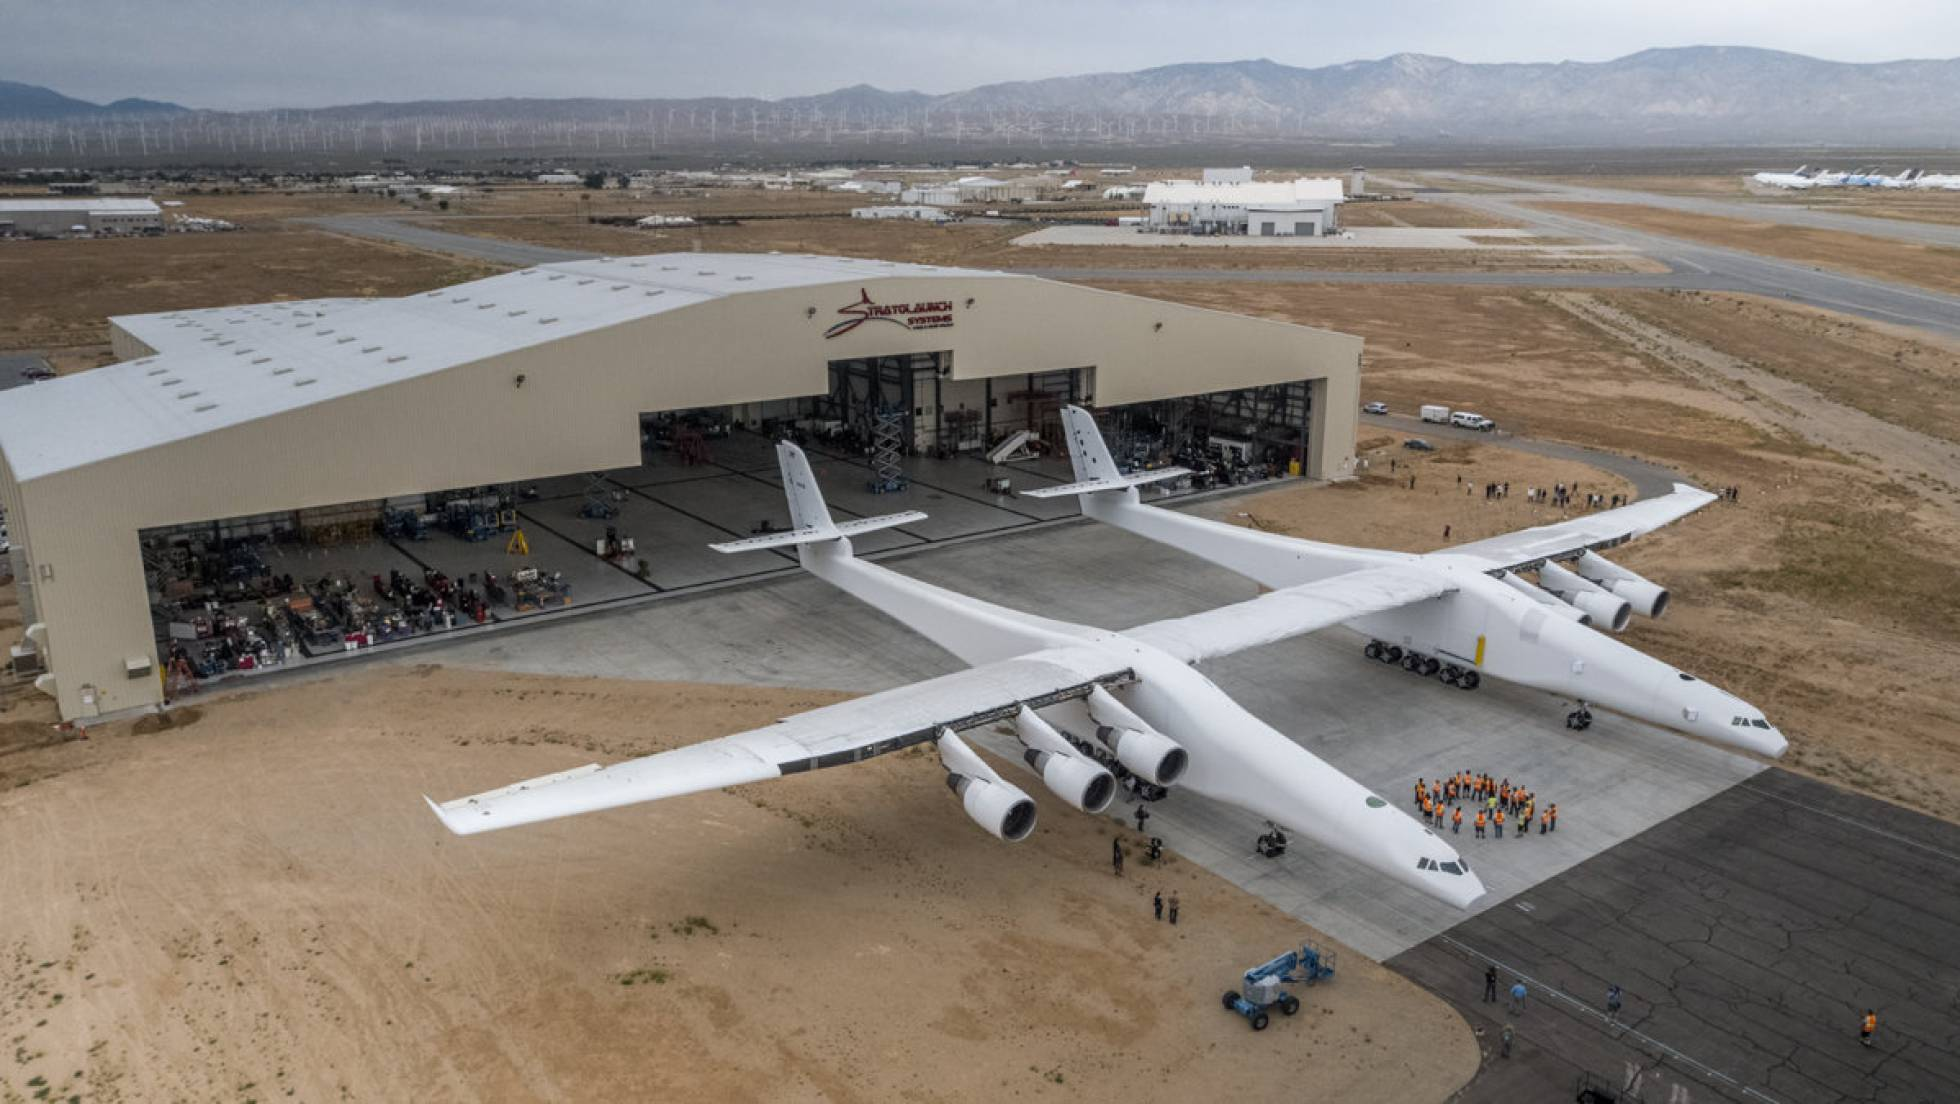 Stratolaunch stratolaunch